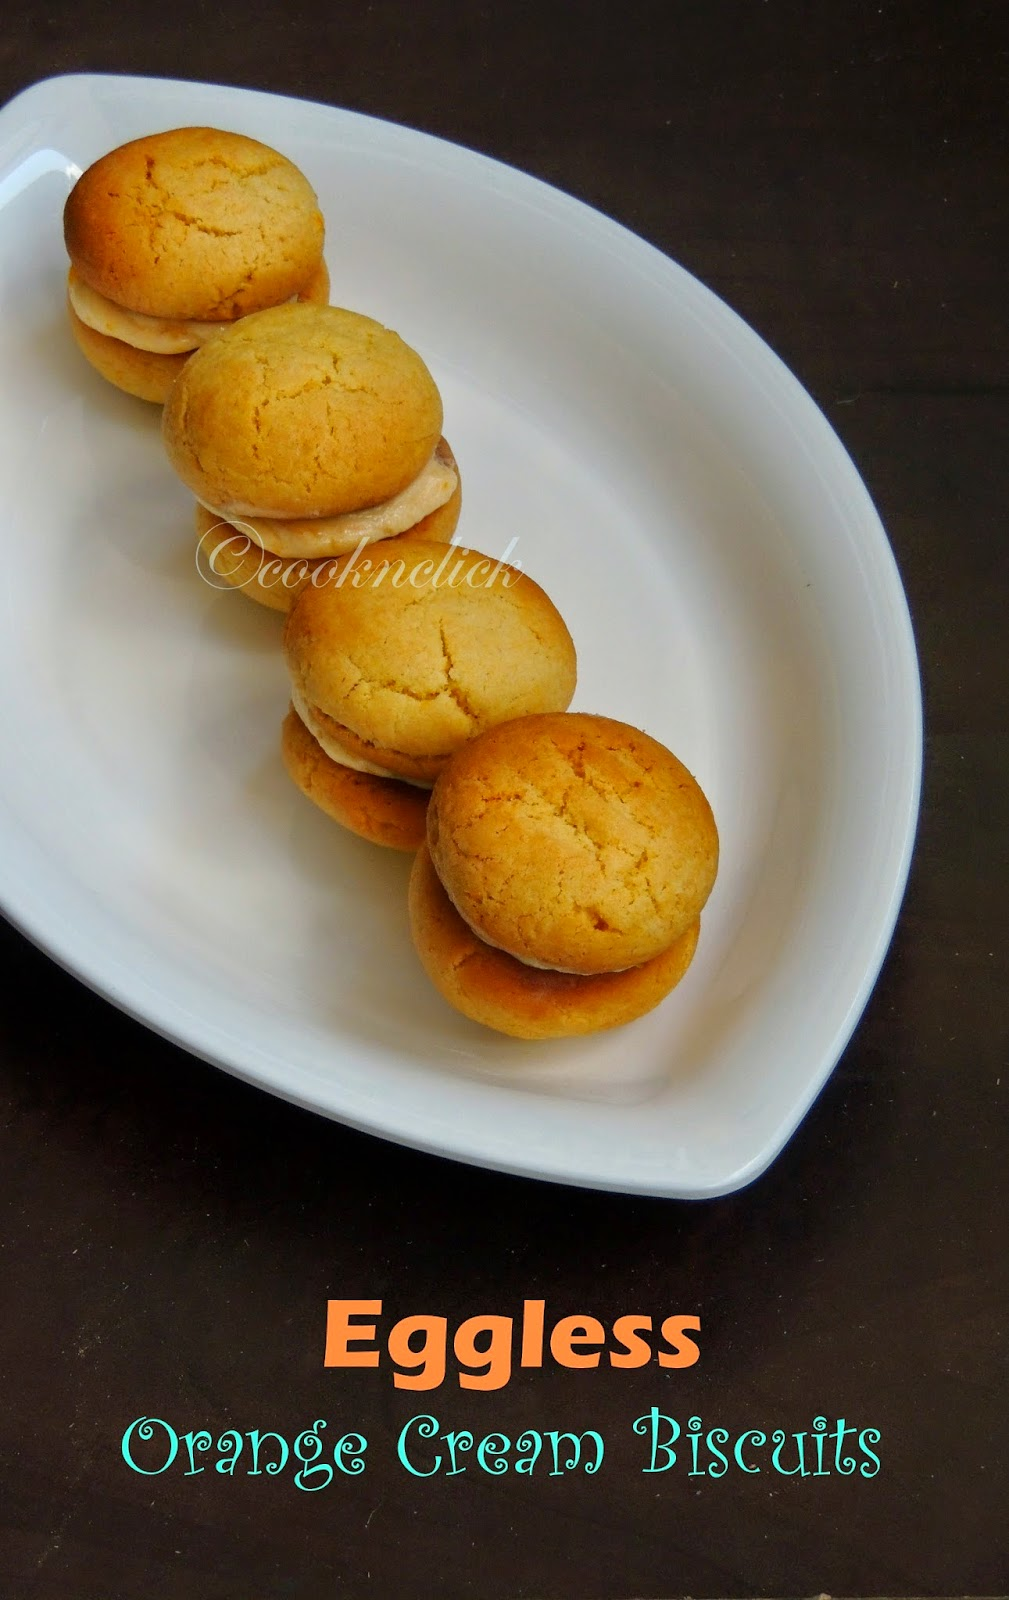 Biscuits with orange cream, Eggless orange cream biscuits